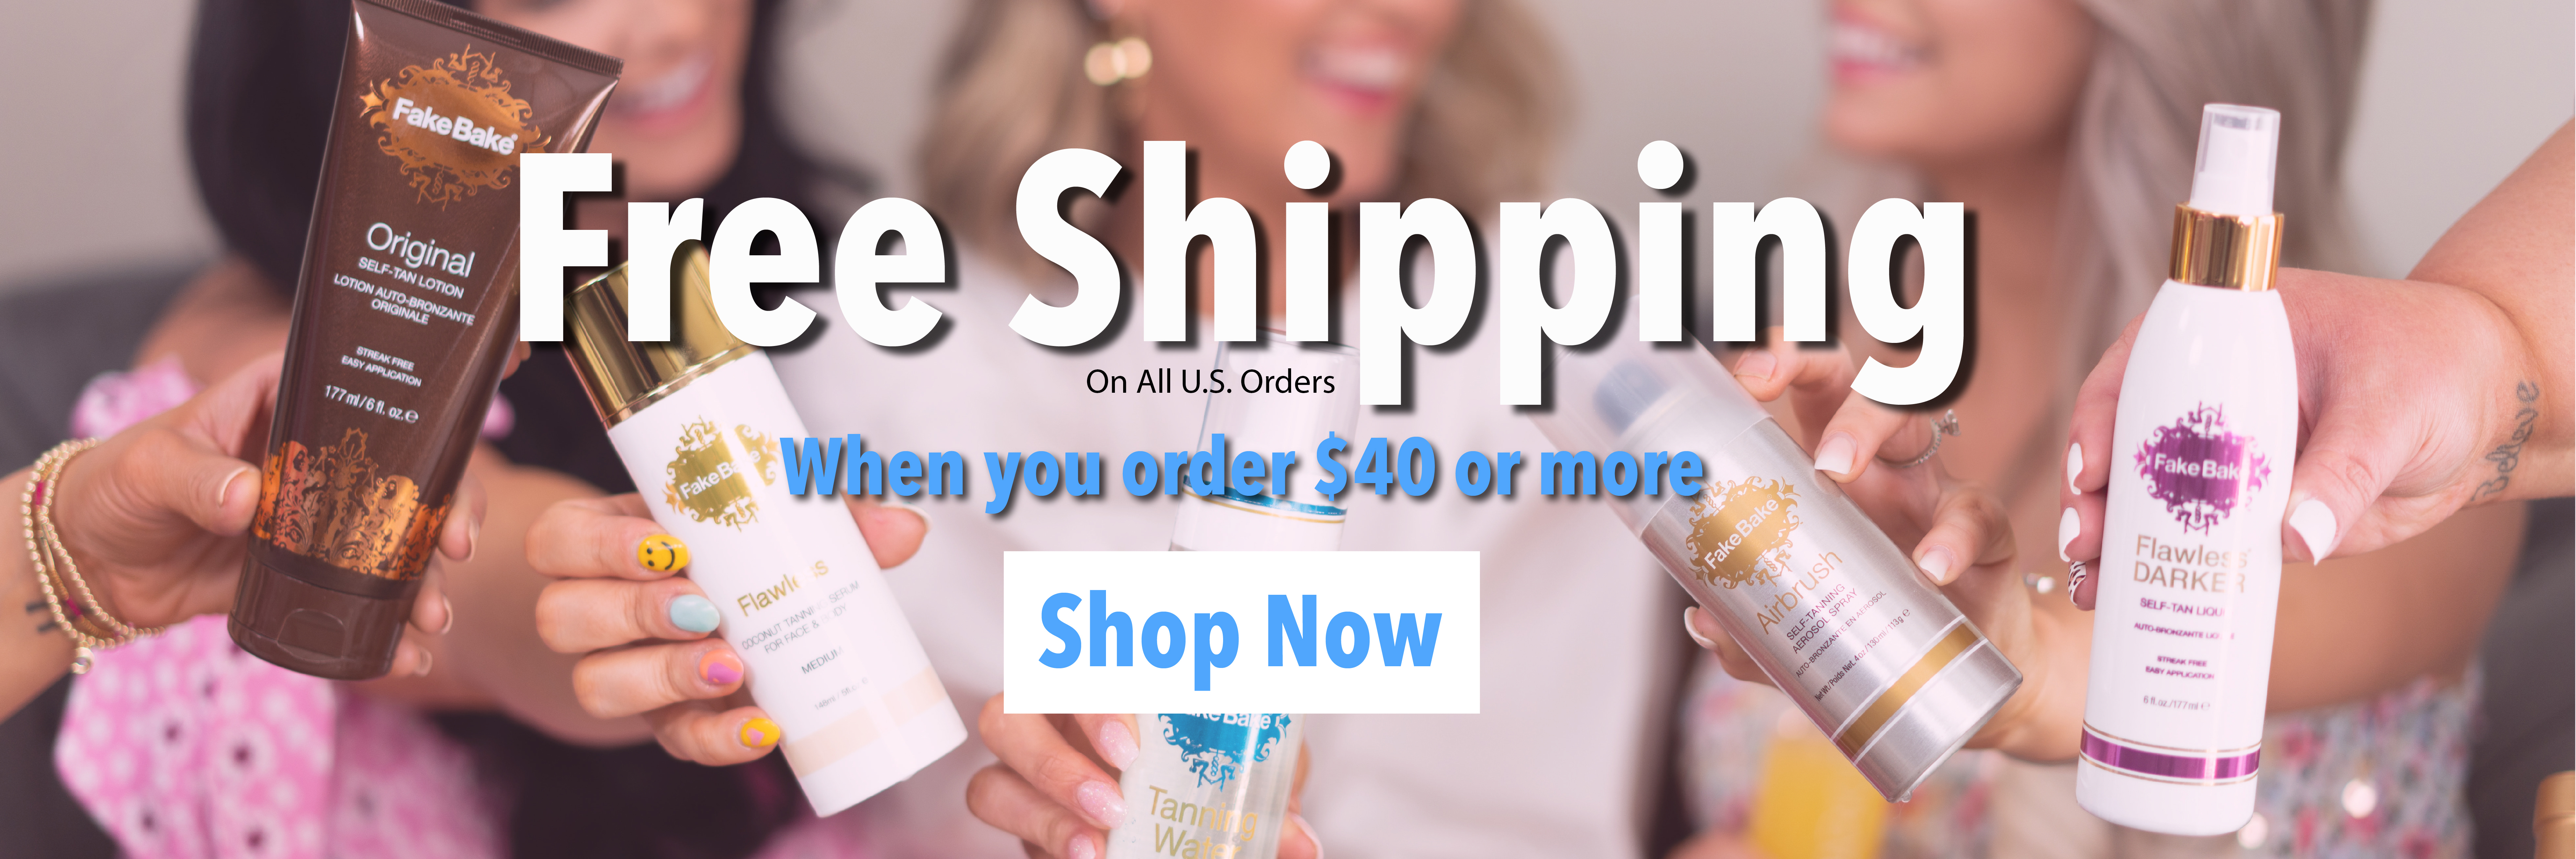 Free Shipping when you order $40 or more